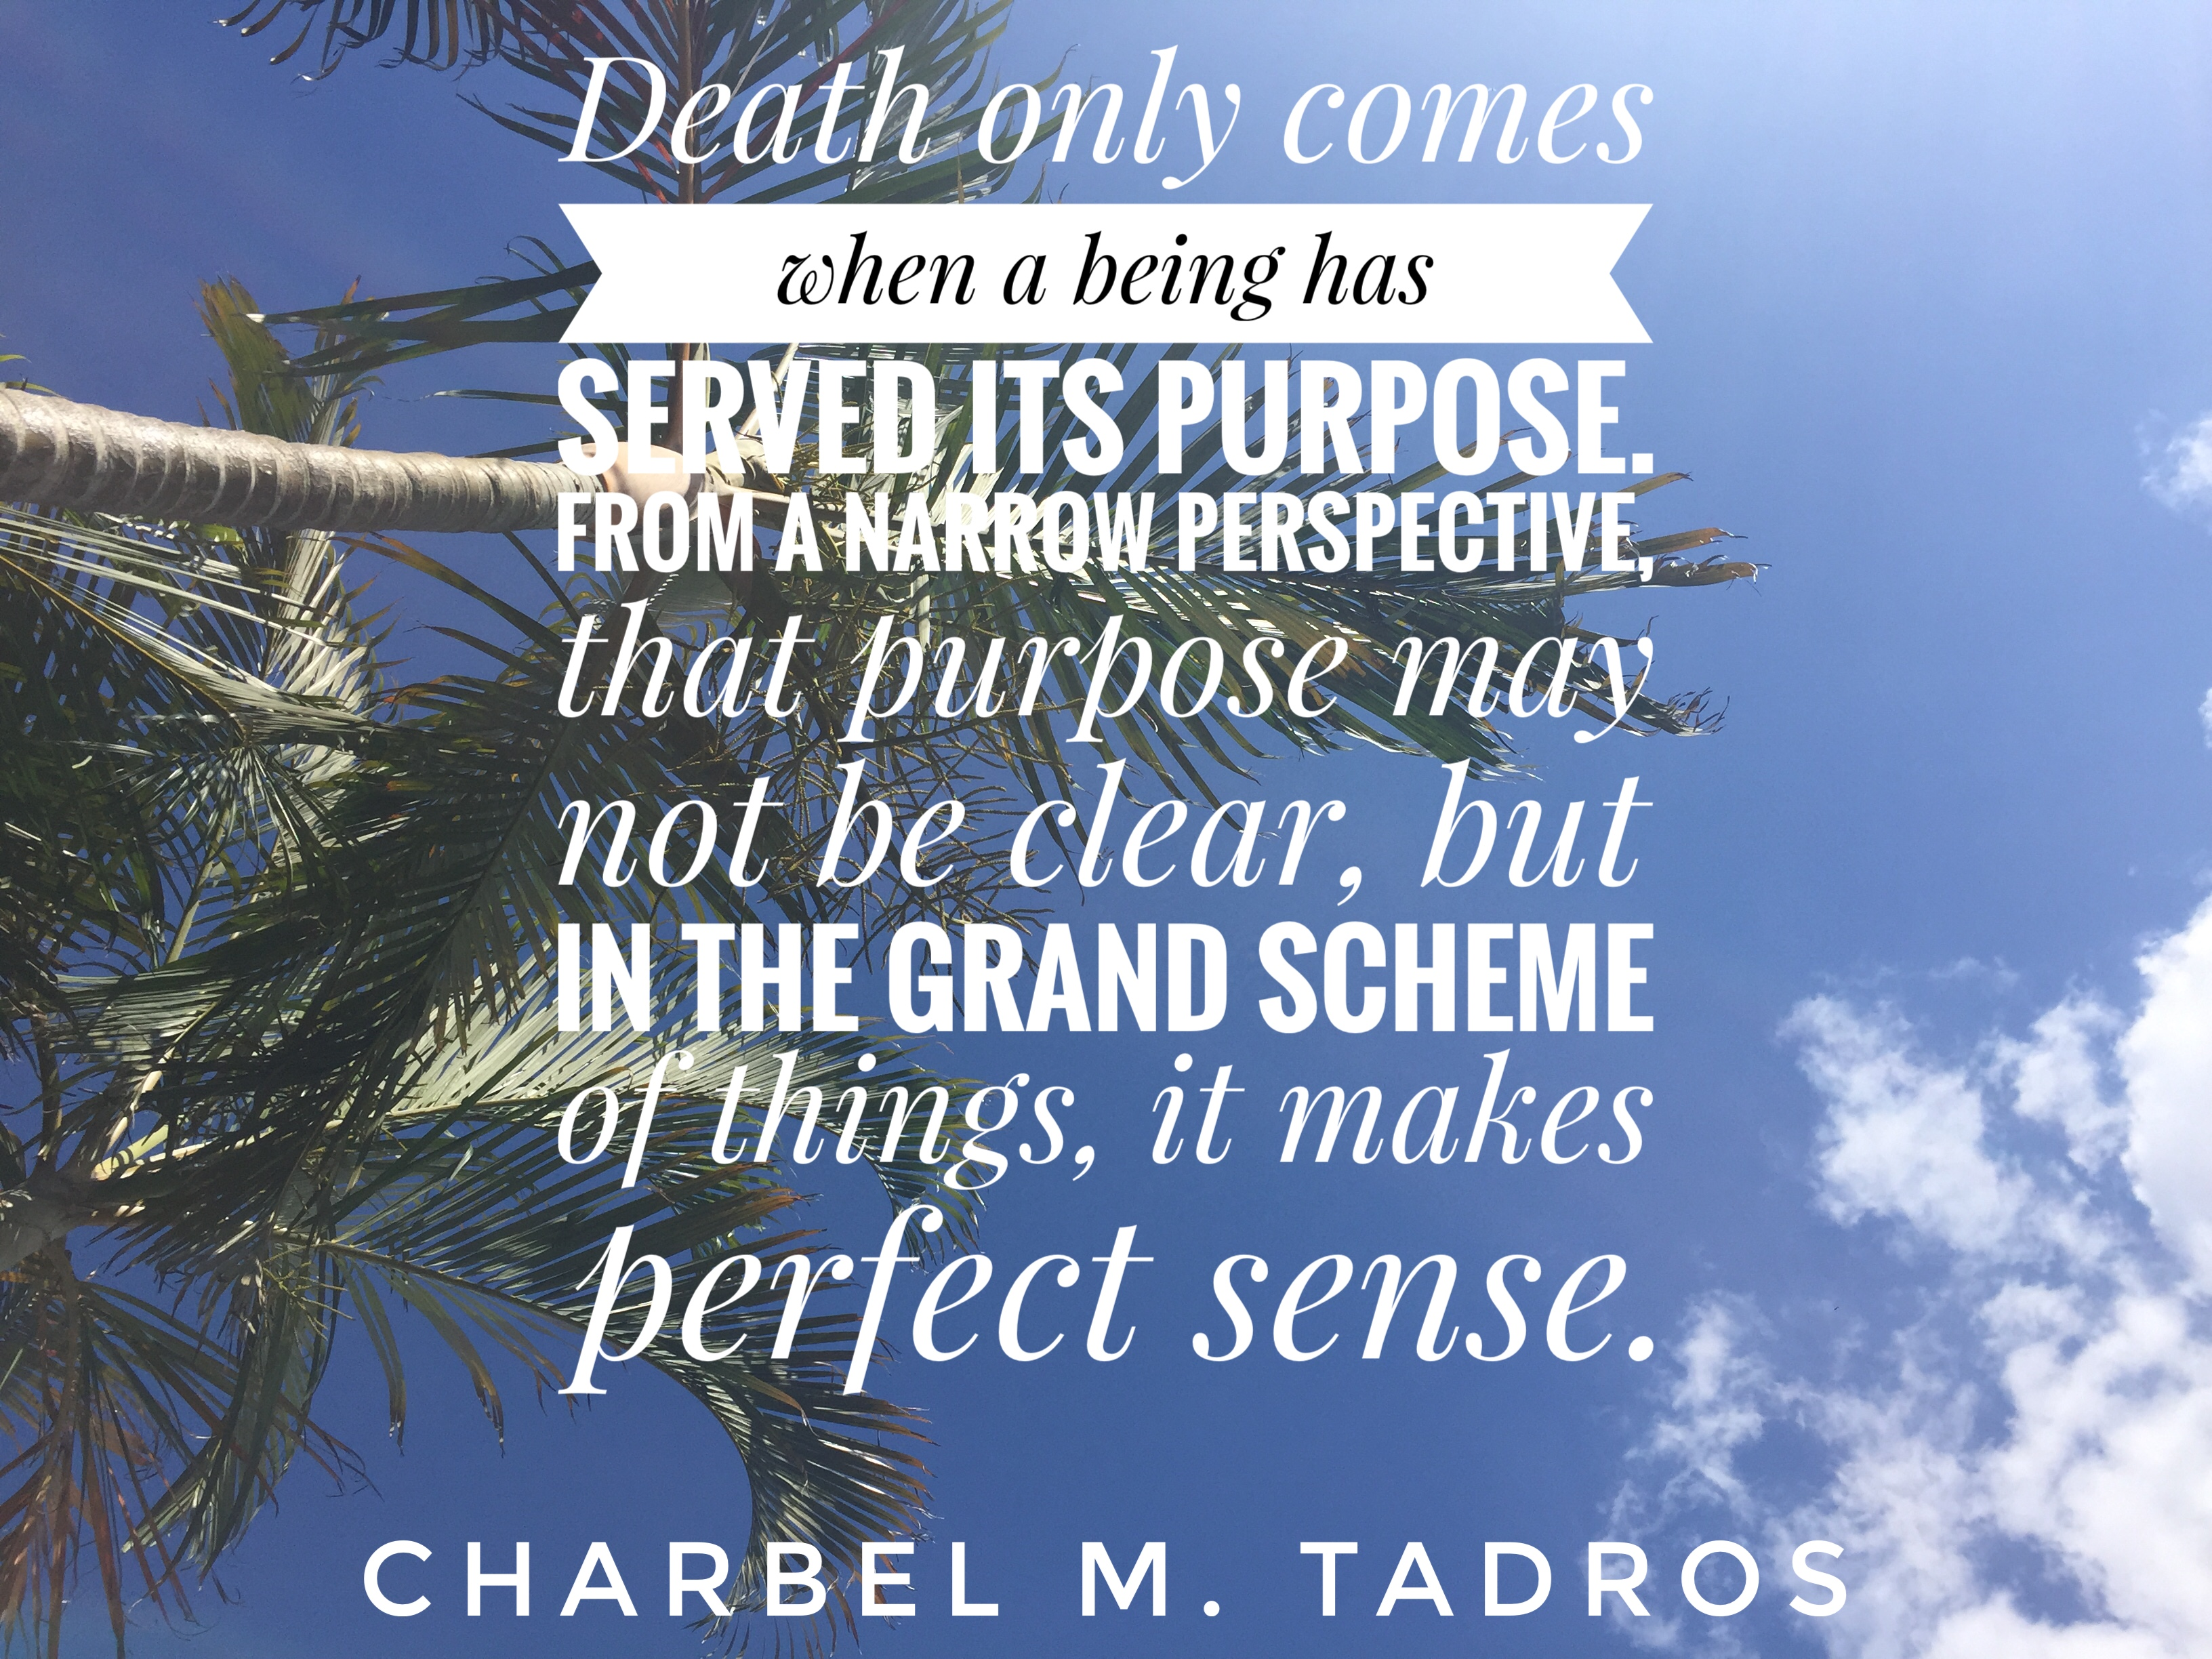 death only comes when a being jas served its purpose. From a narrow perspective, that purpose may not be clear, but in the grand scheme of things, it makes perfect sense.